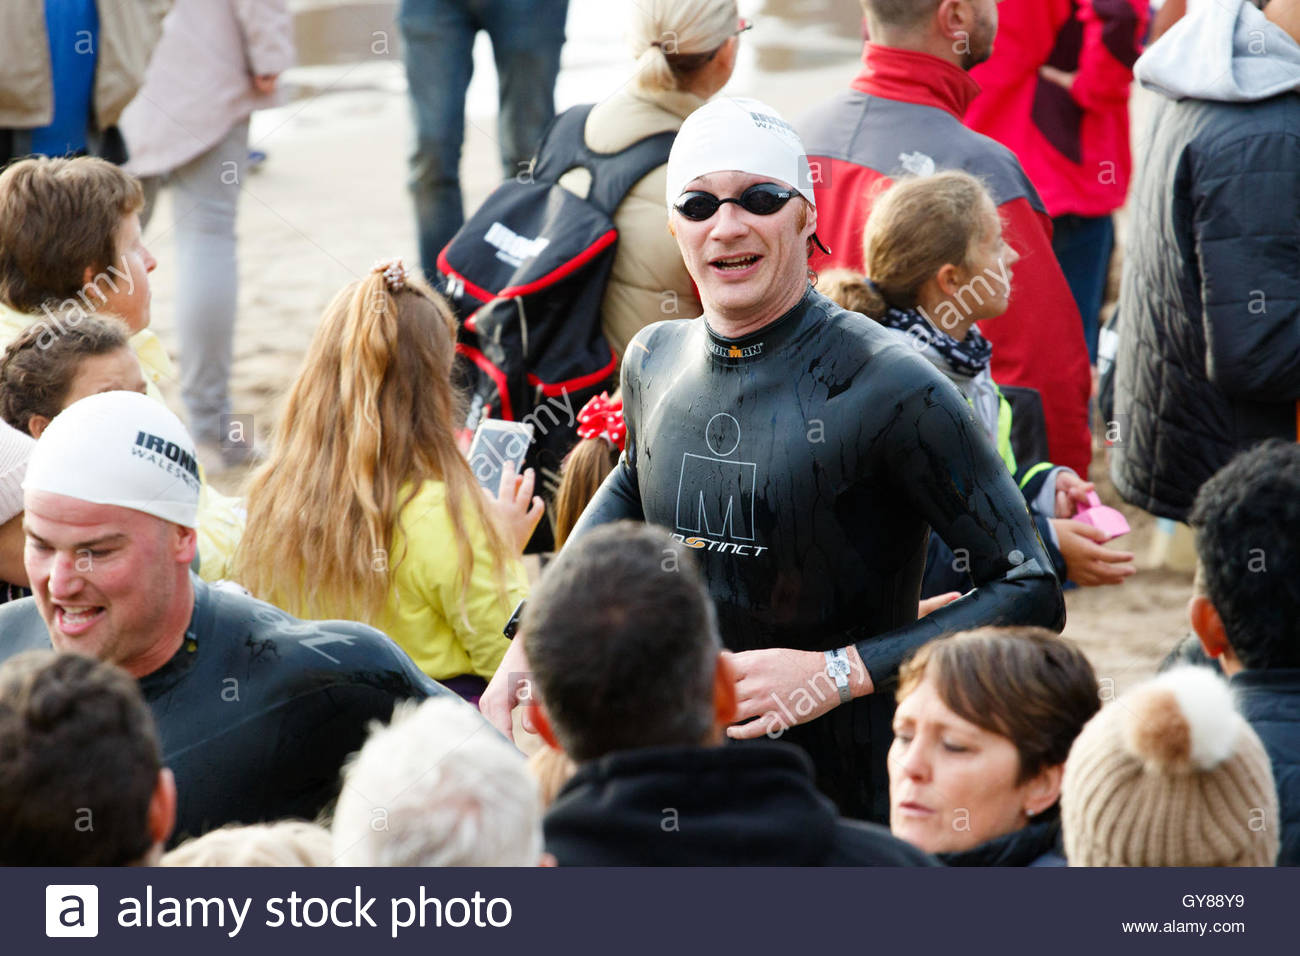 Ironman, North Beach, Tenby, Pembrokeshire, UK. 18th Sept, 2016.  Ironman Wales now in it's 6th year starts - Stock Image